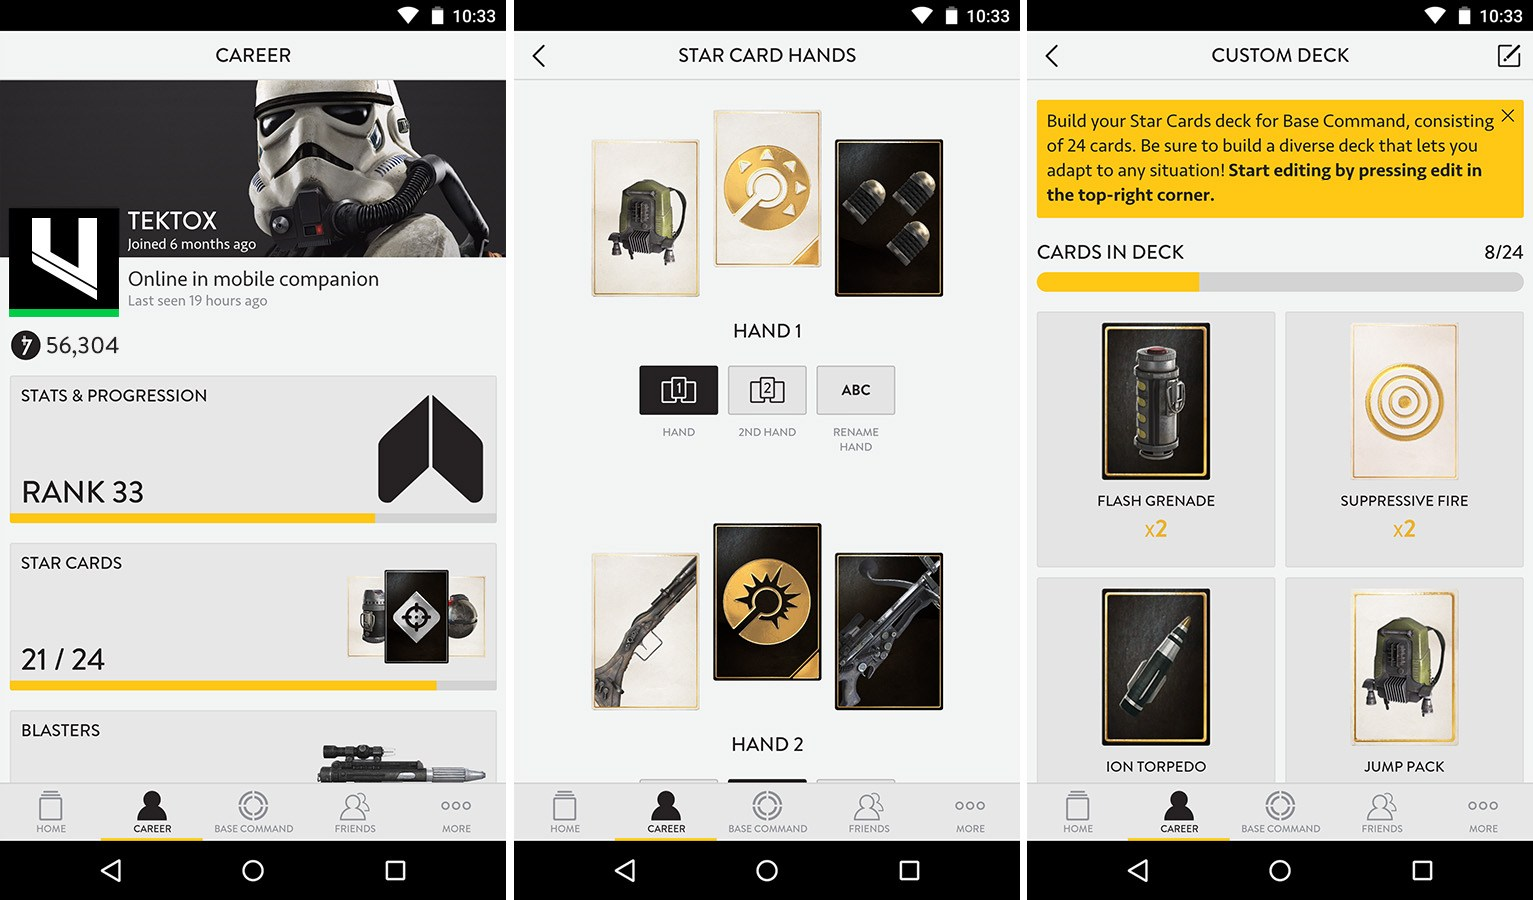 Star Wars Battlefront a aussi droit à son application compagnon